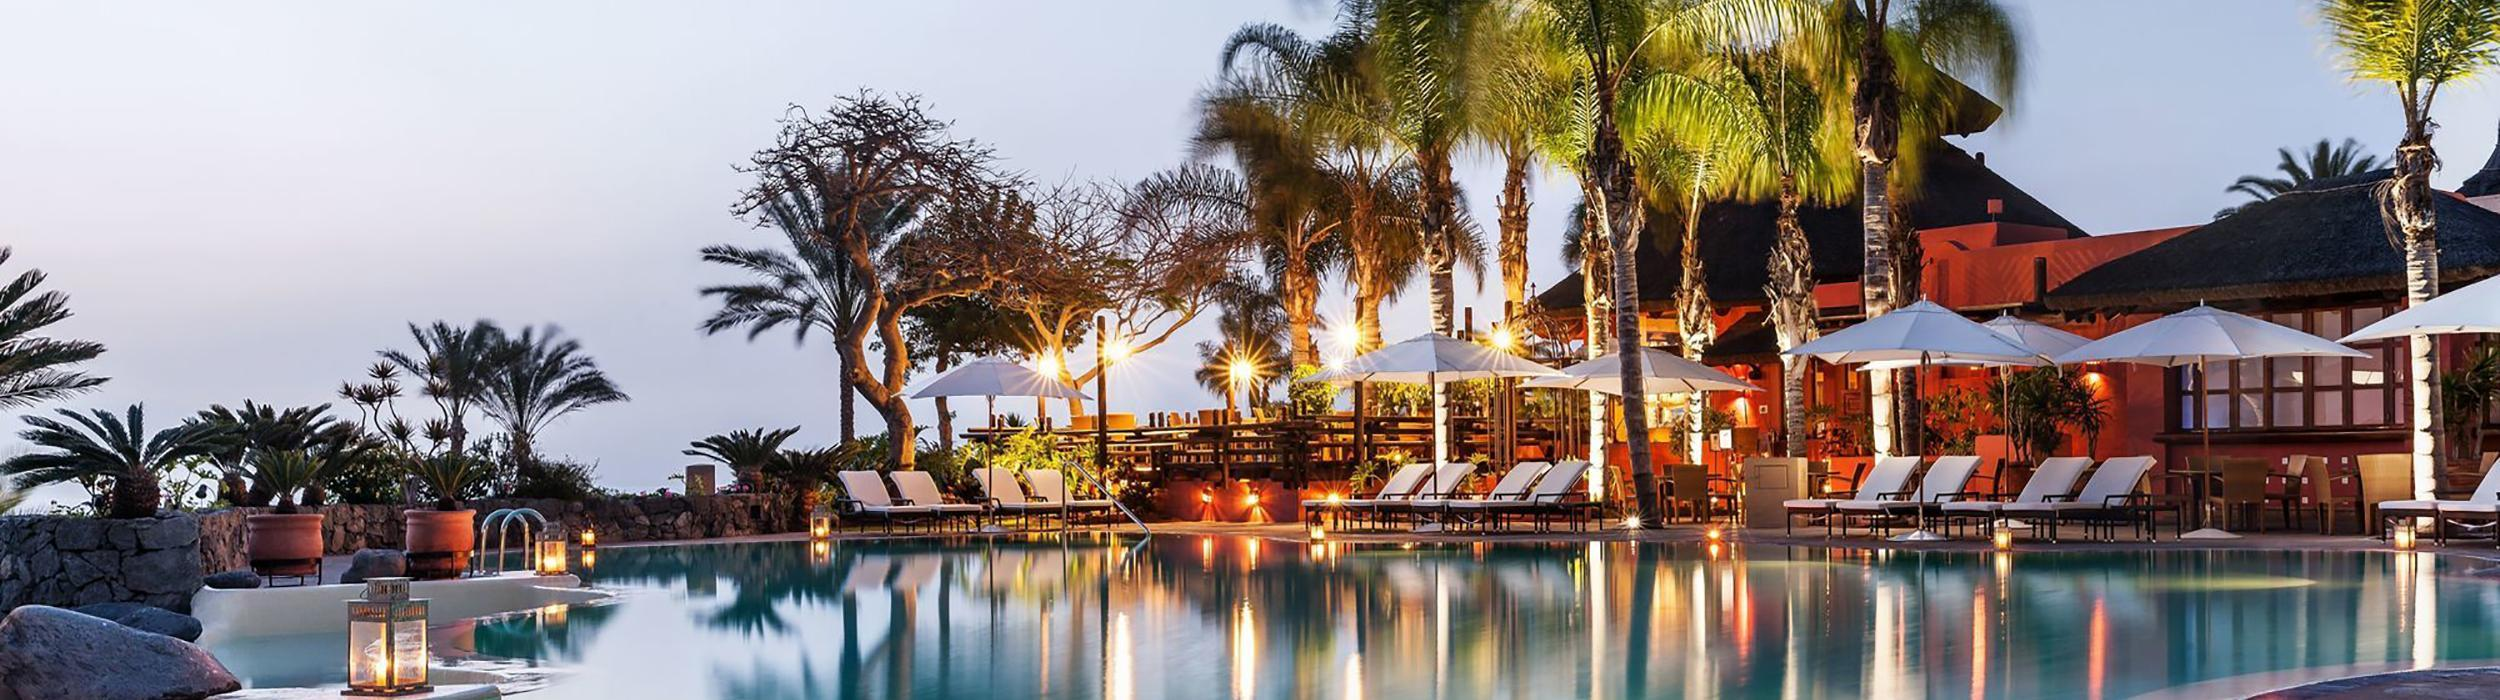 5* Ritz Carlton Abama - 20% off stays in March